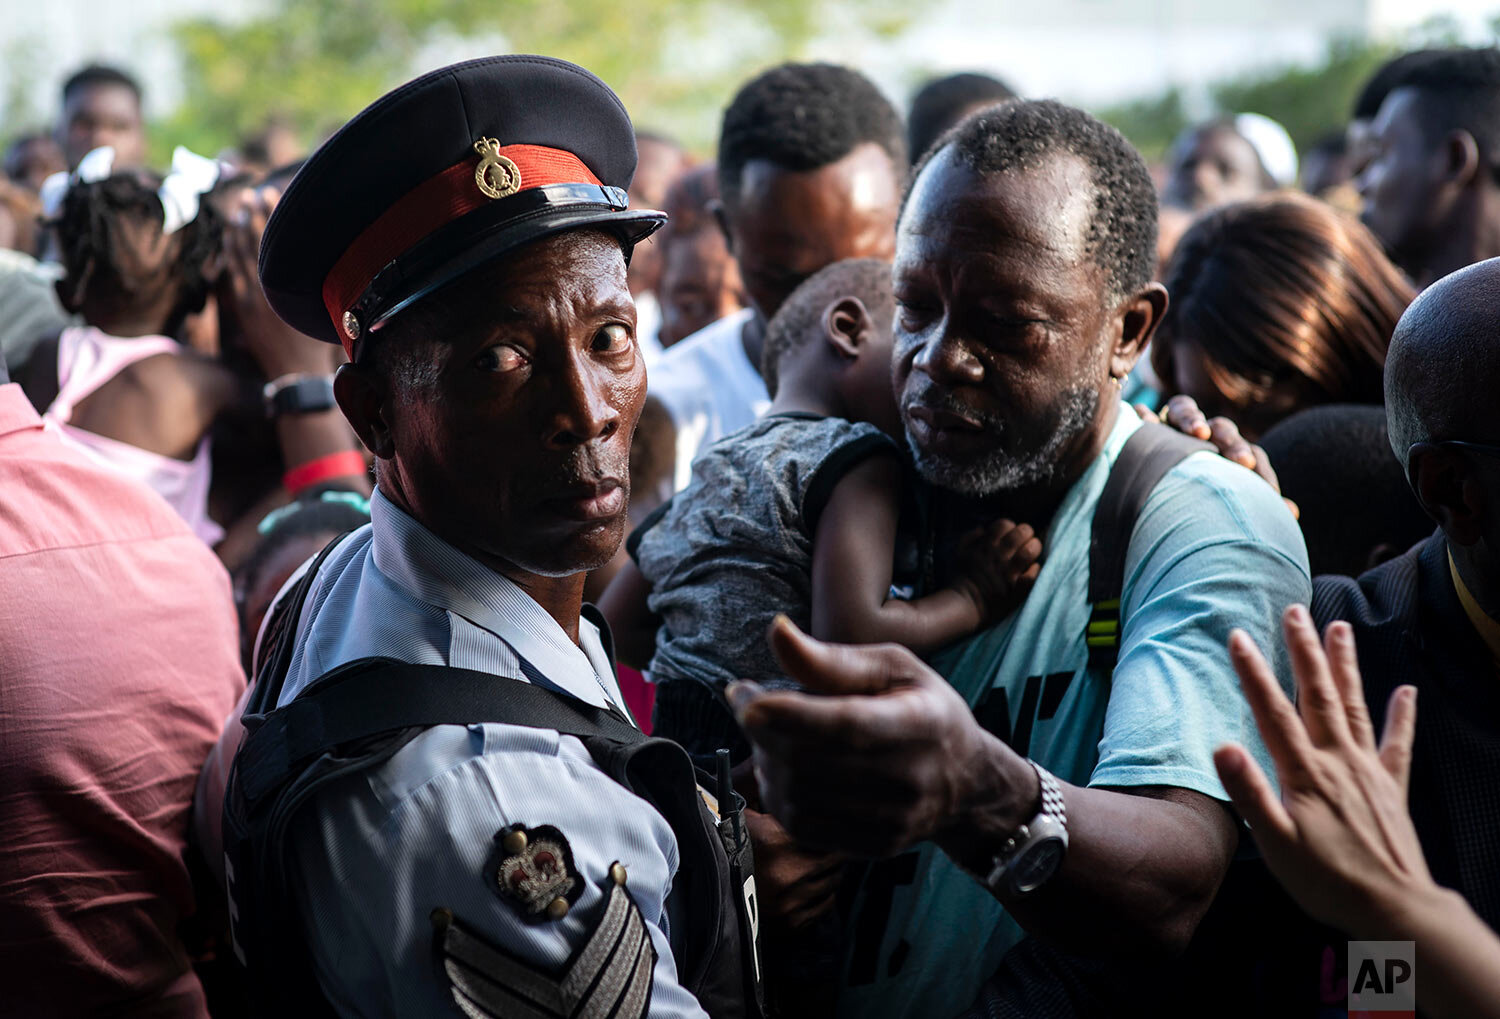 Haitian immigrants displaced from the island of Abaco because of Hurricane Dorian wait to get food from humanitarian organizations in Nassau, Bahamas, Sunday, Sept. 29, 2019.  (AP Photo / Ramon Espinosa)